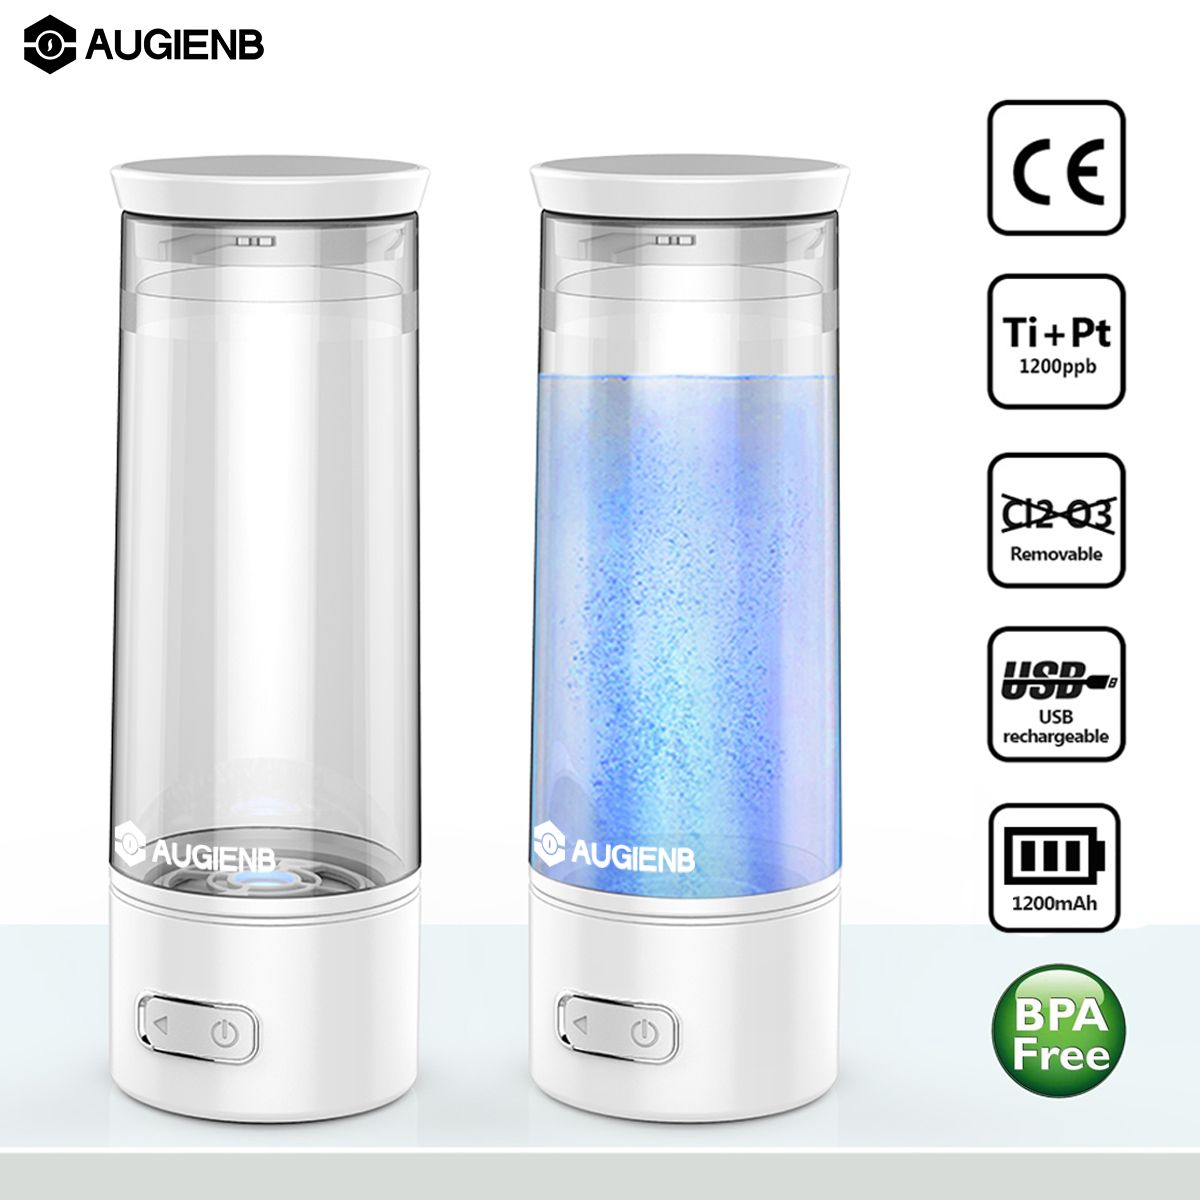 Augienb USB Rechargeable Anti Aging Portable Hydrogen Rich Water Bottle Ionizer Healthy Electrolyte Negative Ion Generator